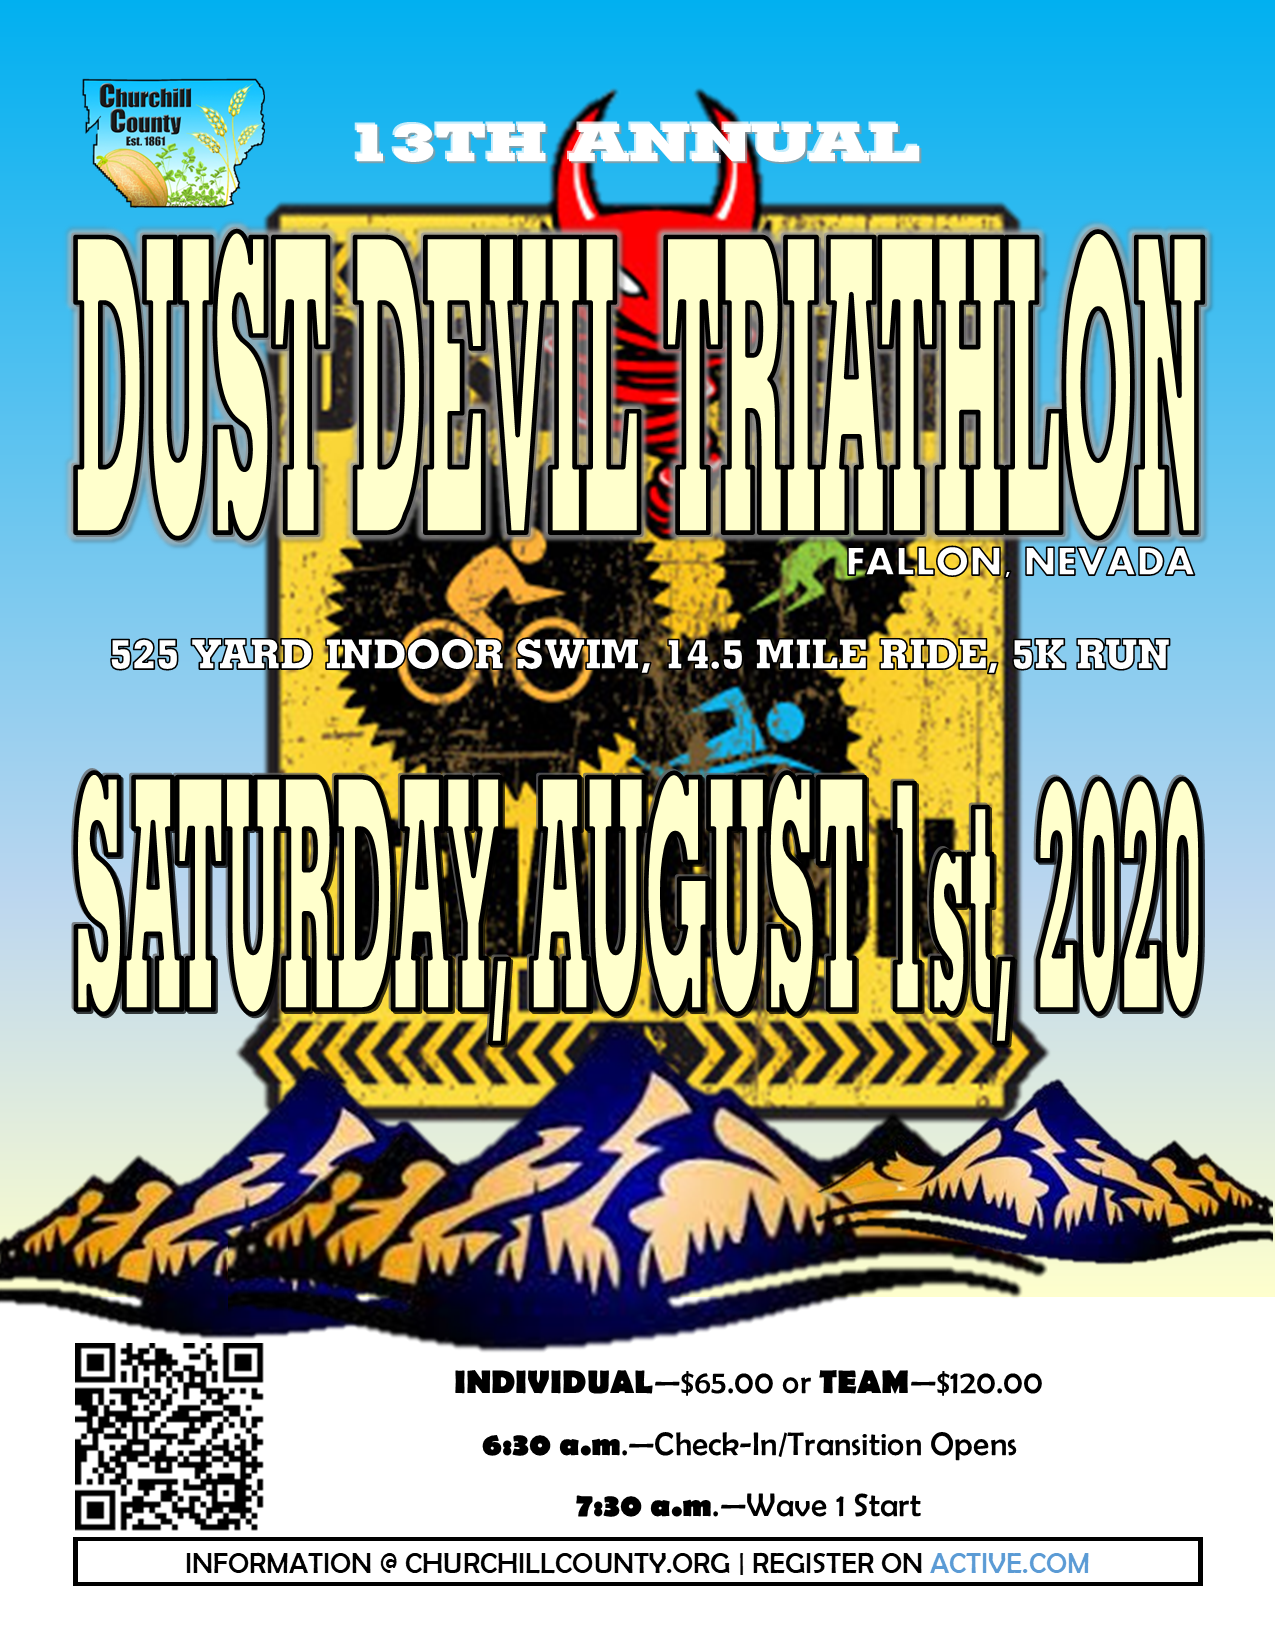 Dust Devil Sprint Triathlon (2020) - Flyer (Digital)